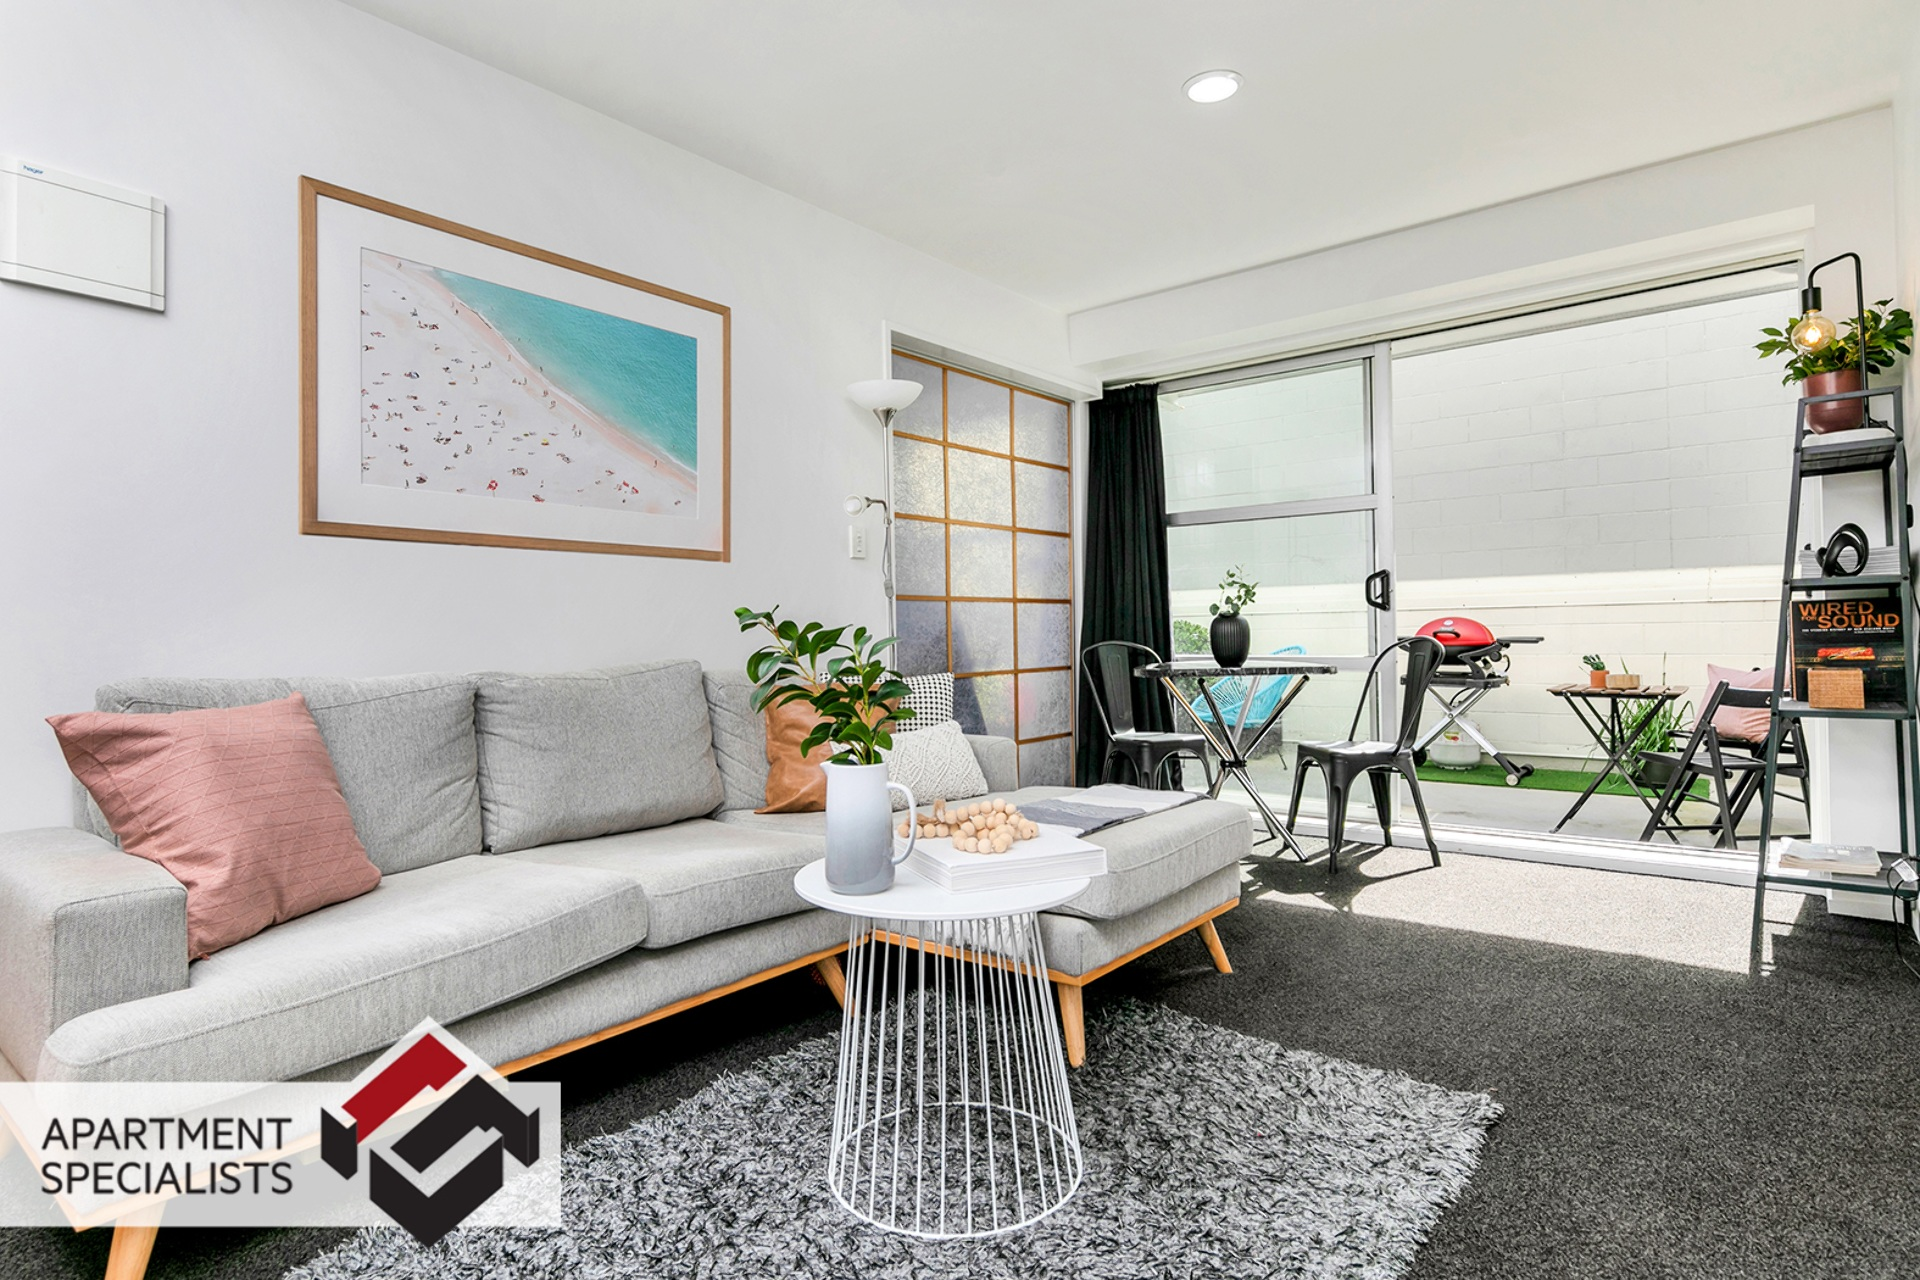 1 | 8 Clayton Street, Newmarket | Apartment Specialists